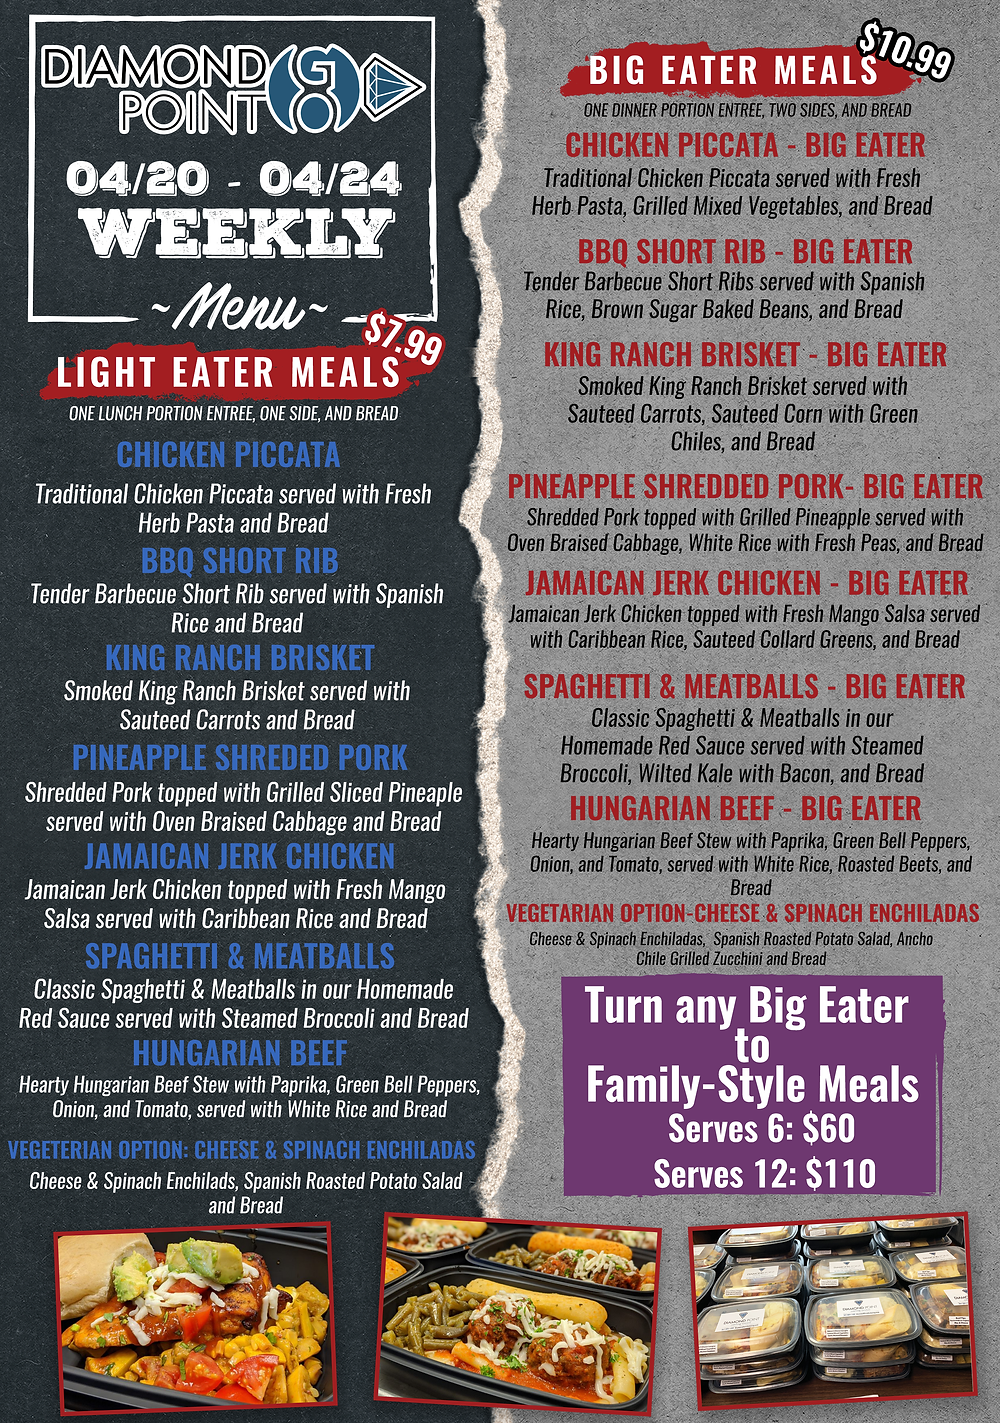 Diamond Point GO Menu for April 27 through May 1 offering light eater, big eater, and family-style size meals!